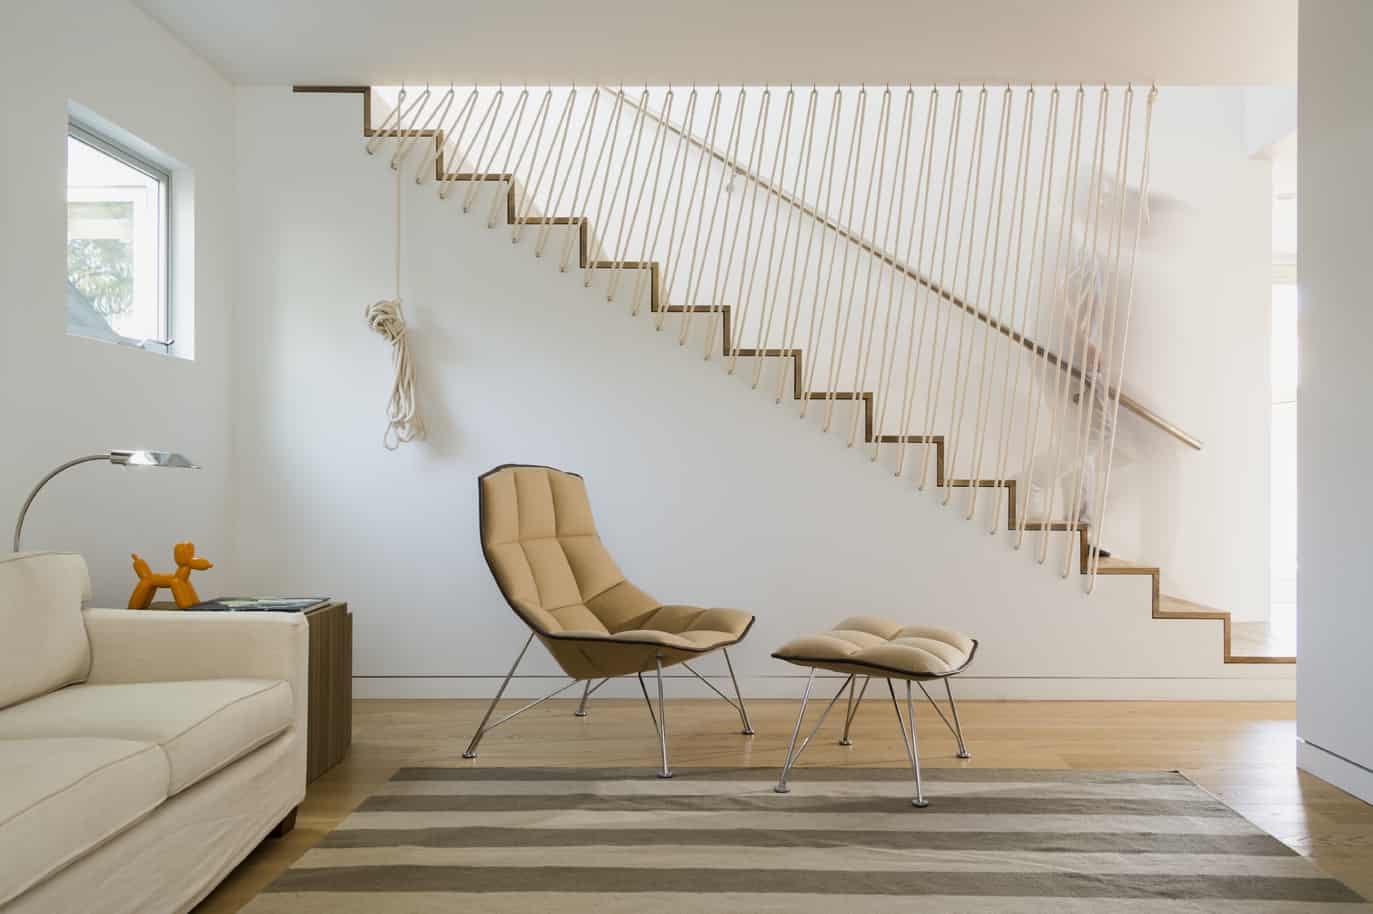 Stairs With Rope Railing Look | Nautical Rope Stair Railing | Ship Rope | Closed Staircase | Cottage Style | Banister | Minimalistic